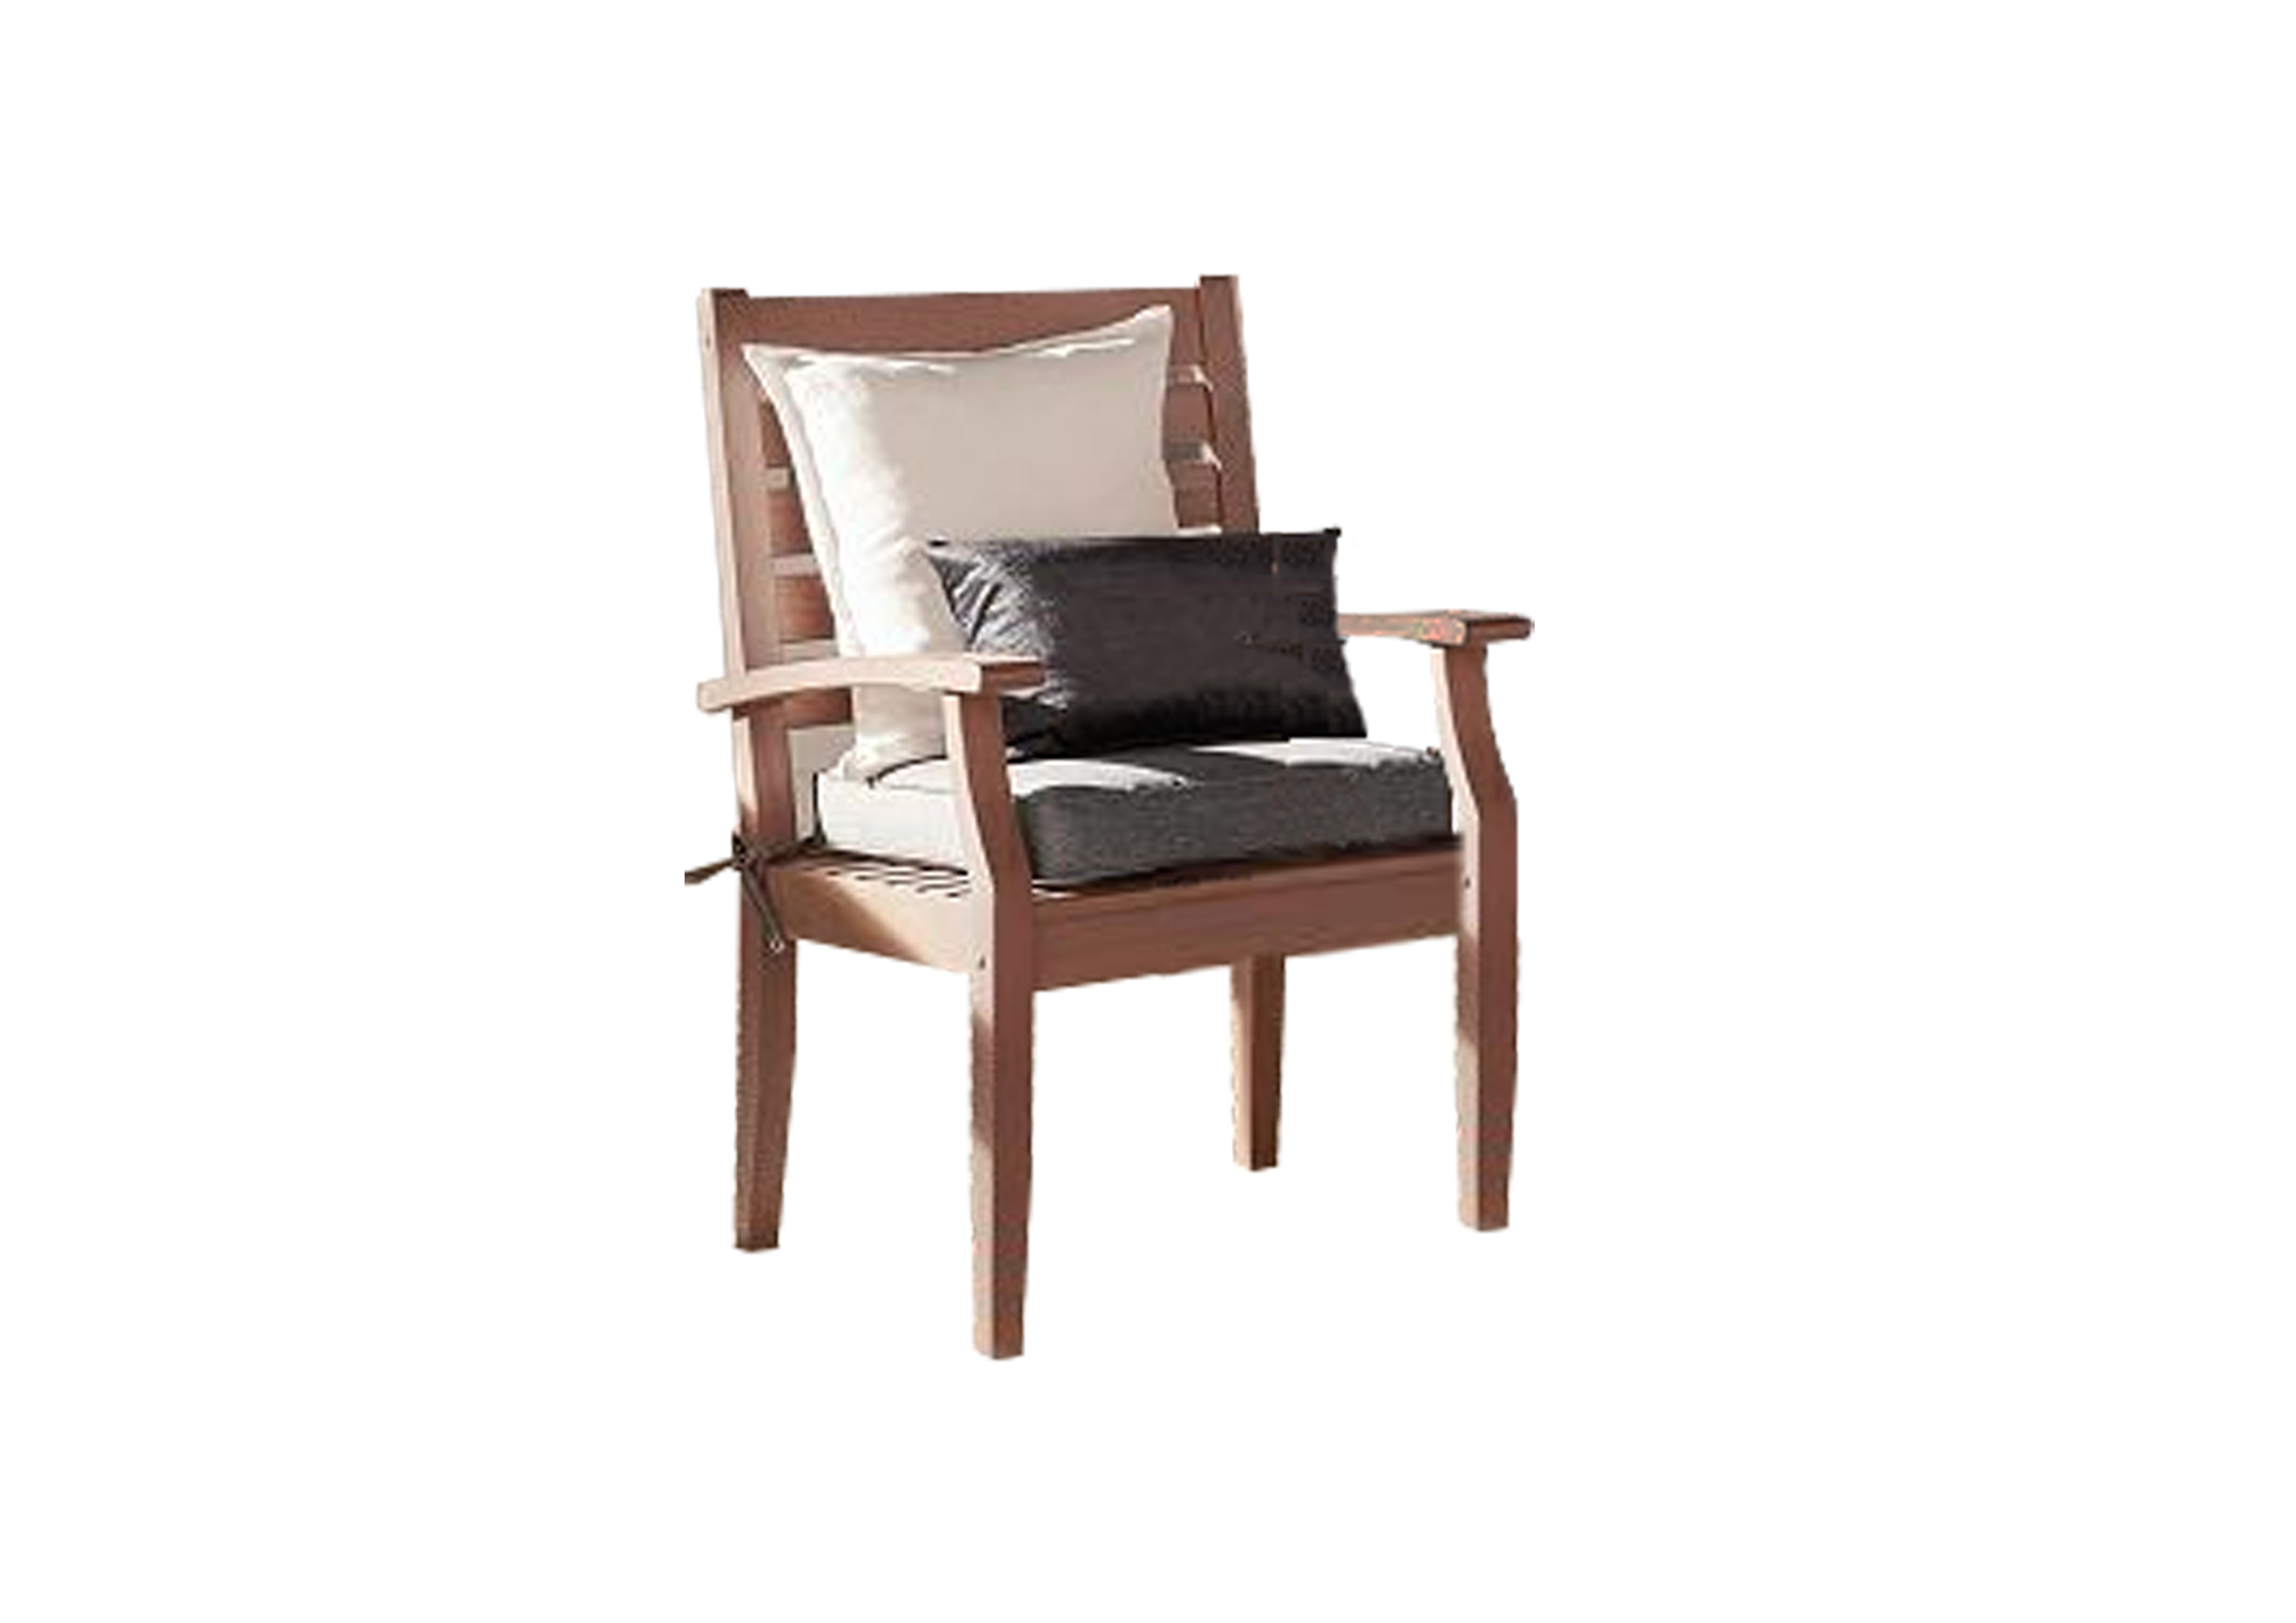 Perle Outdoor Dining Chair.jpg